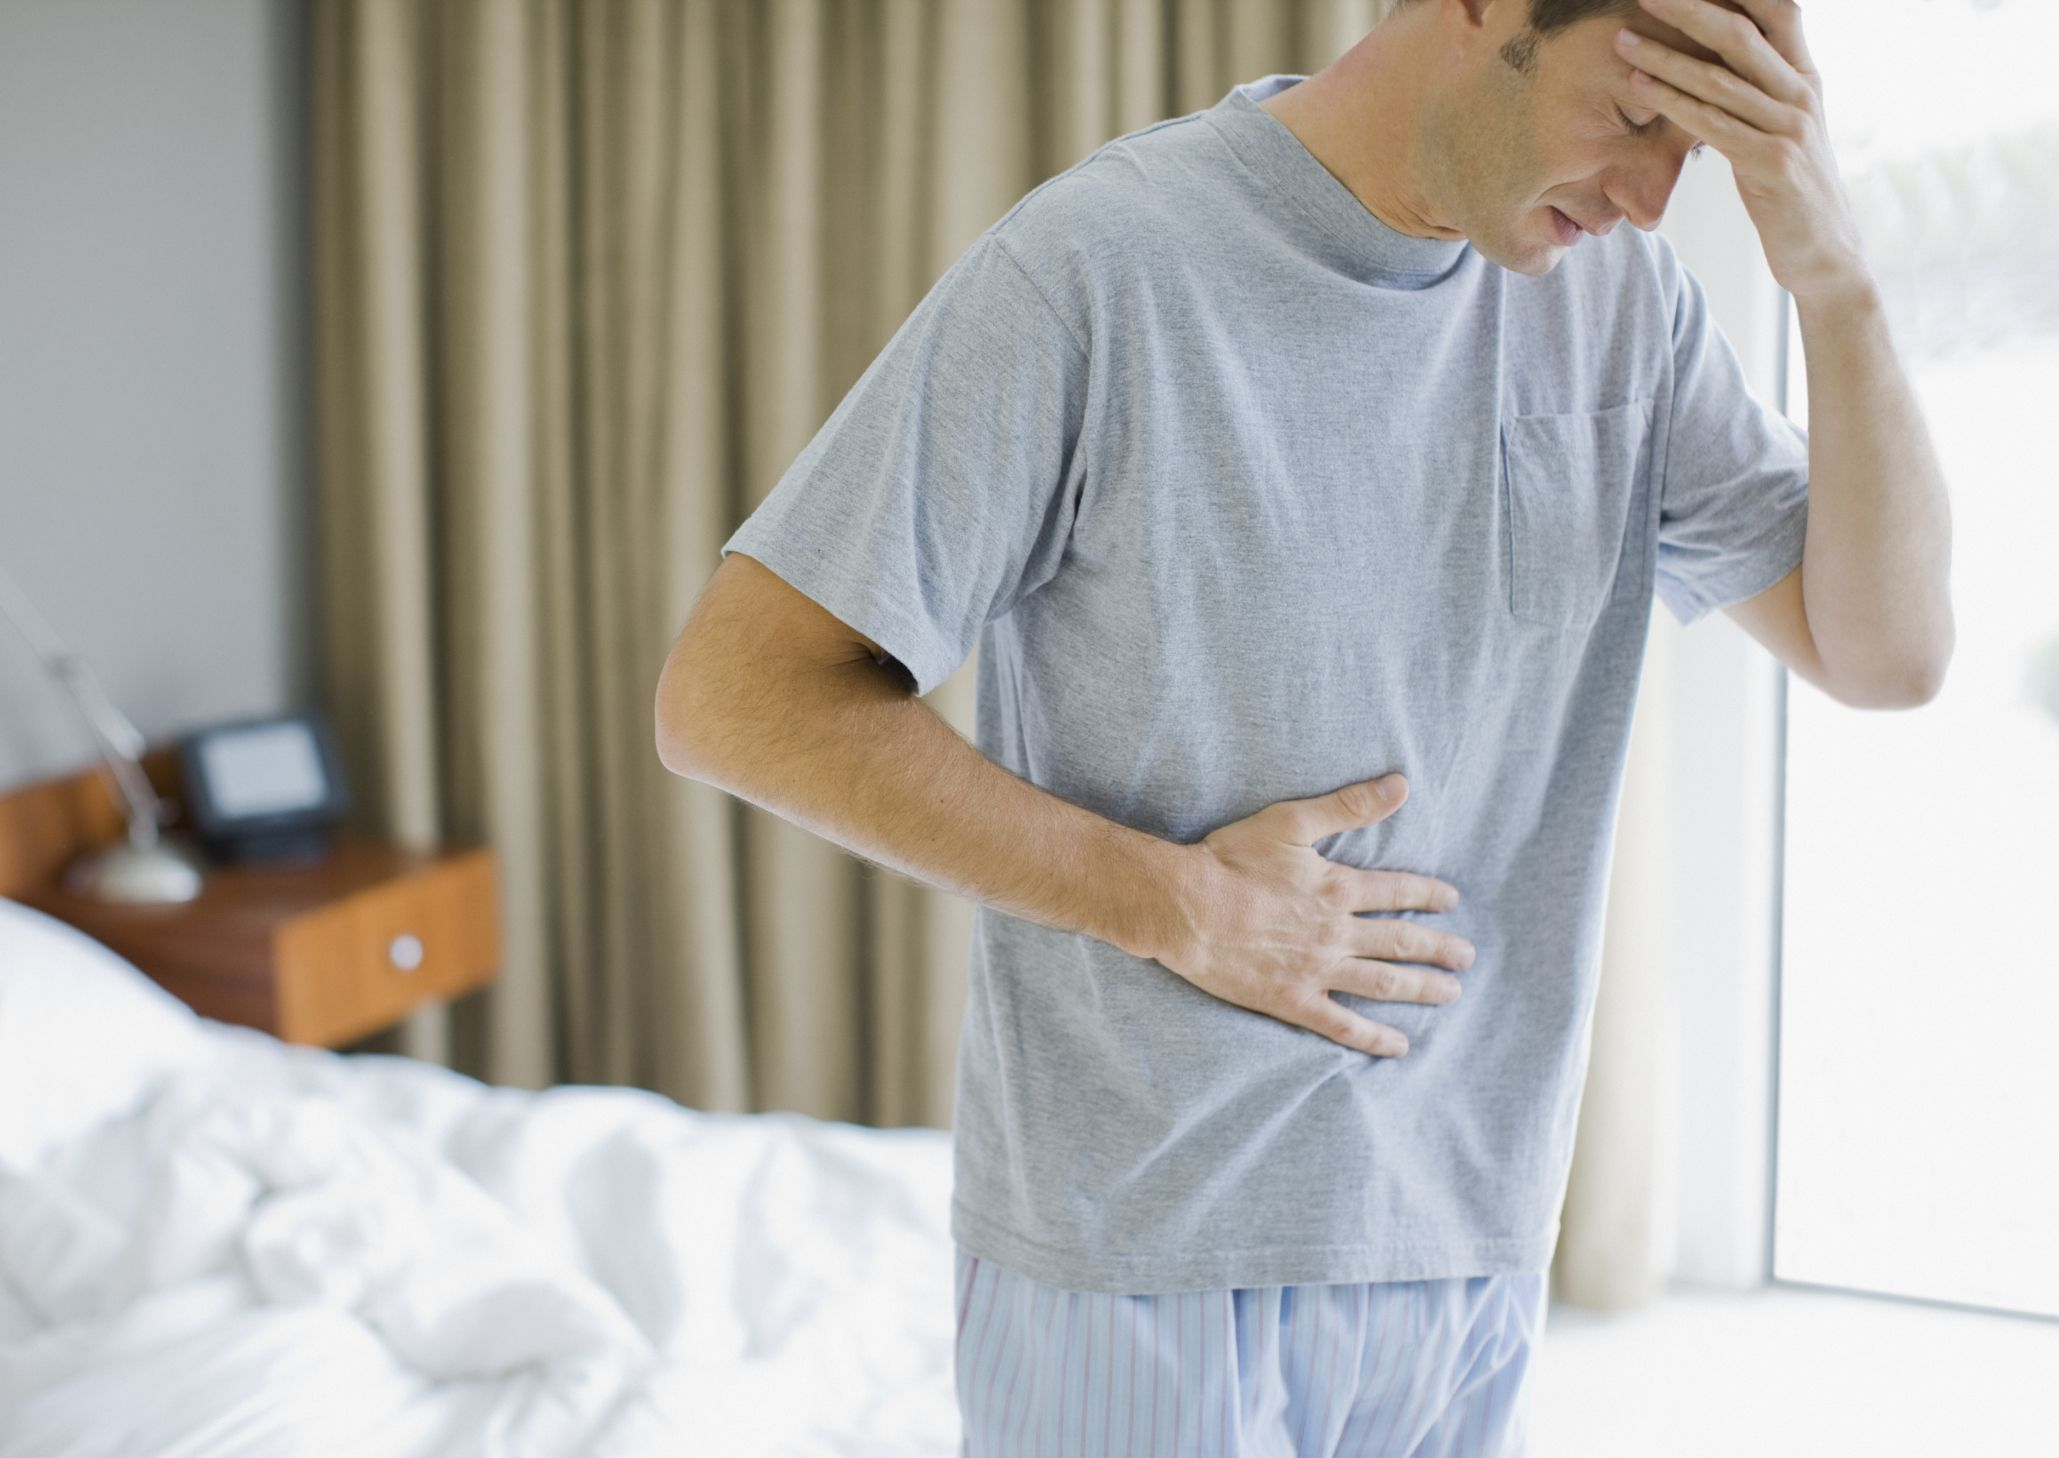 The Stomach Virus: Symptoms, Causes, Diagnosis, and Treatment